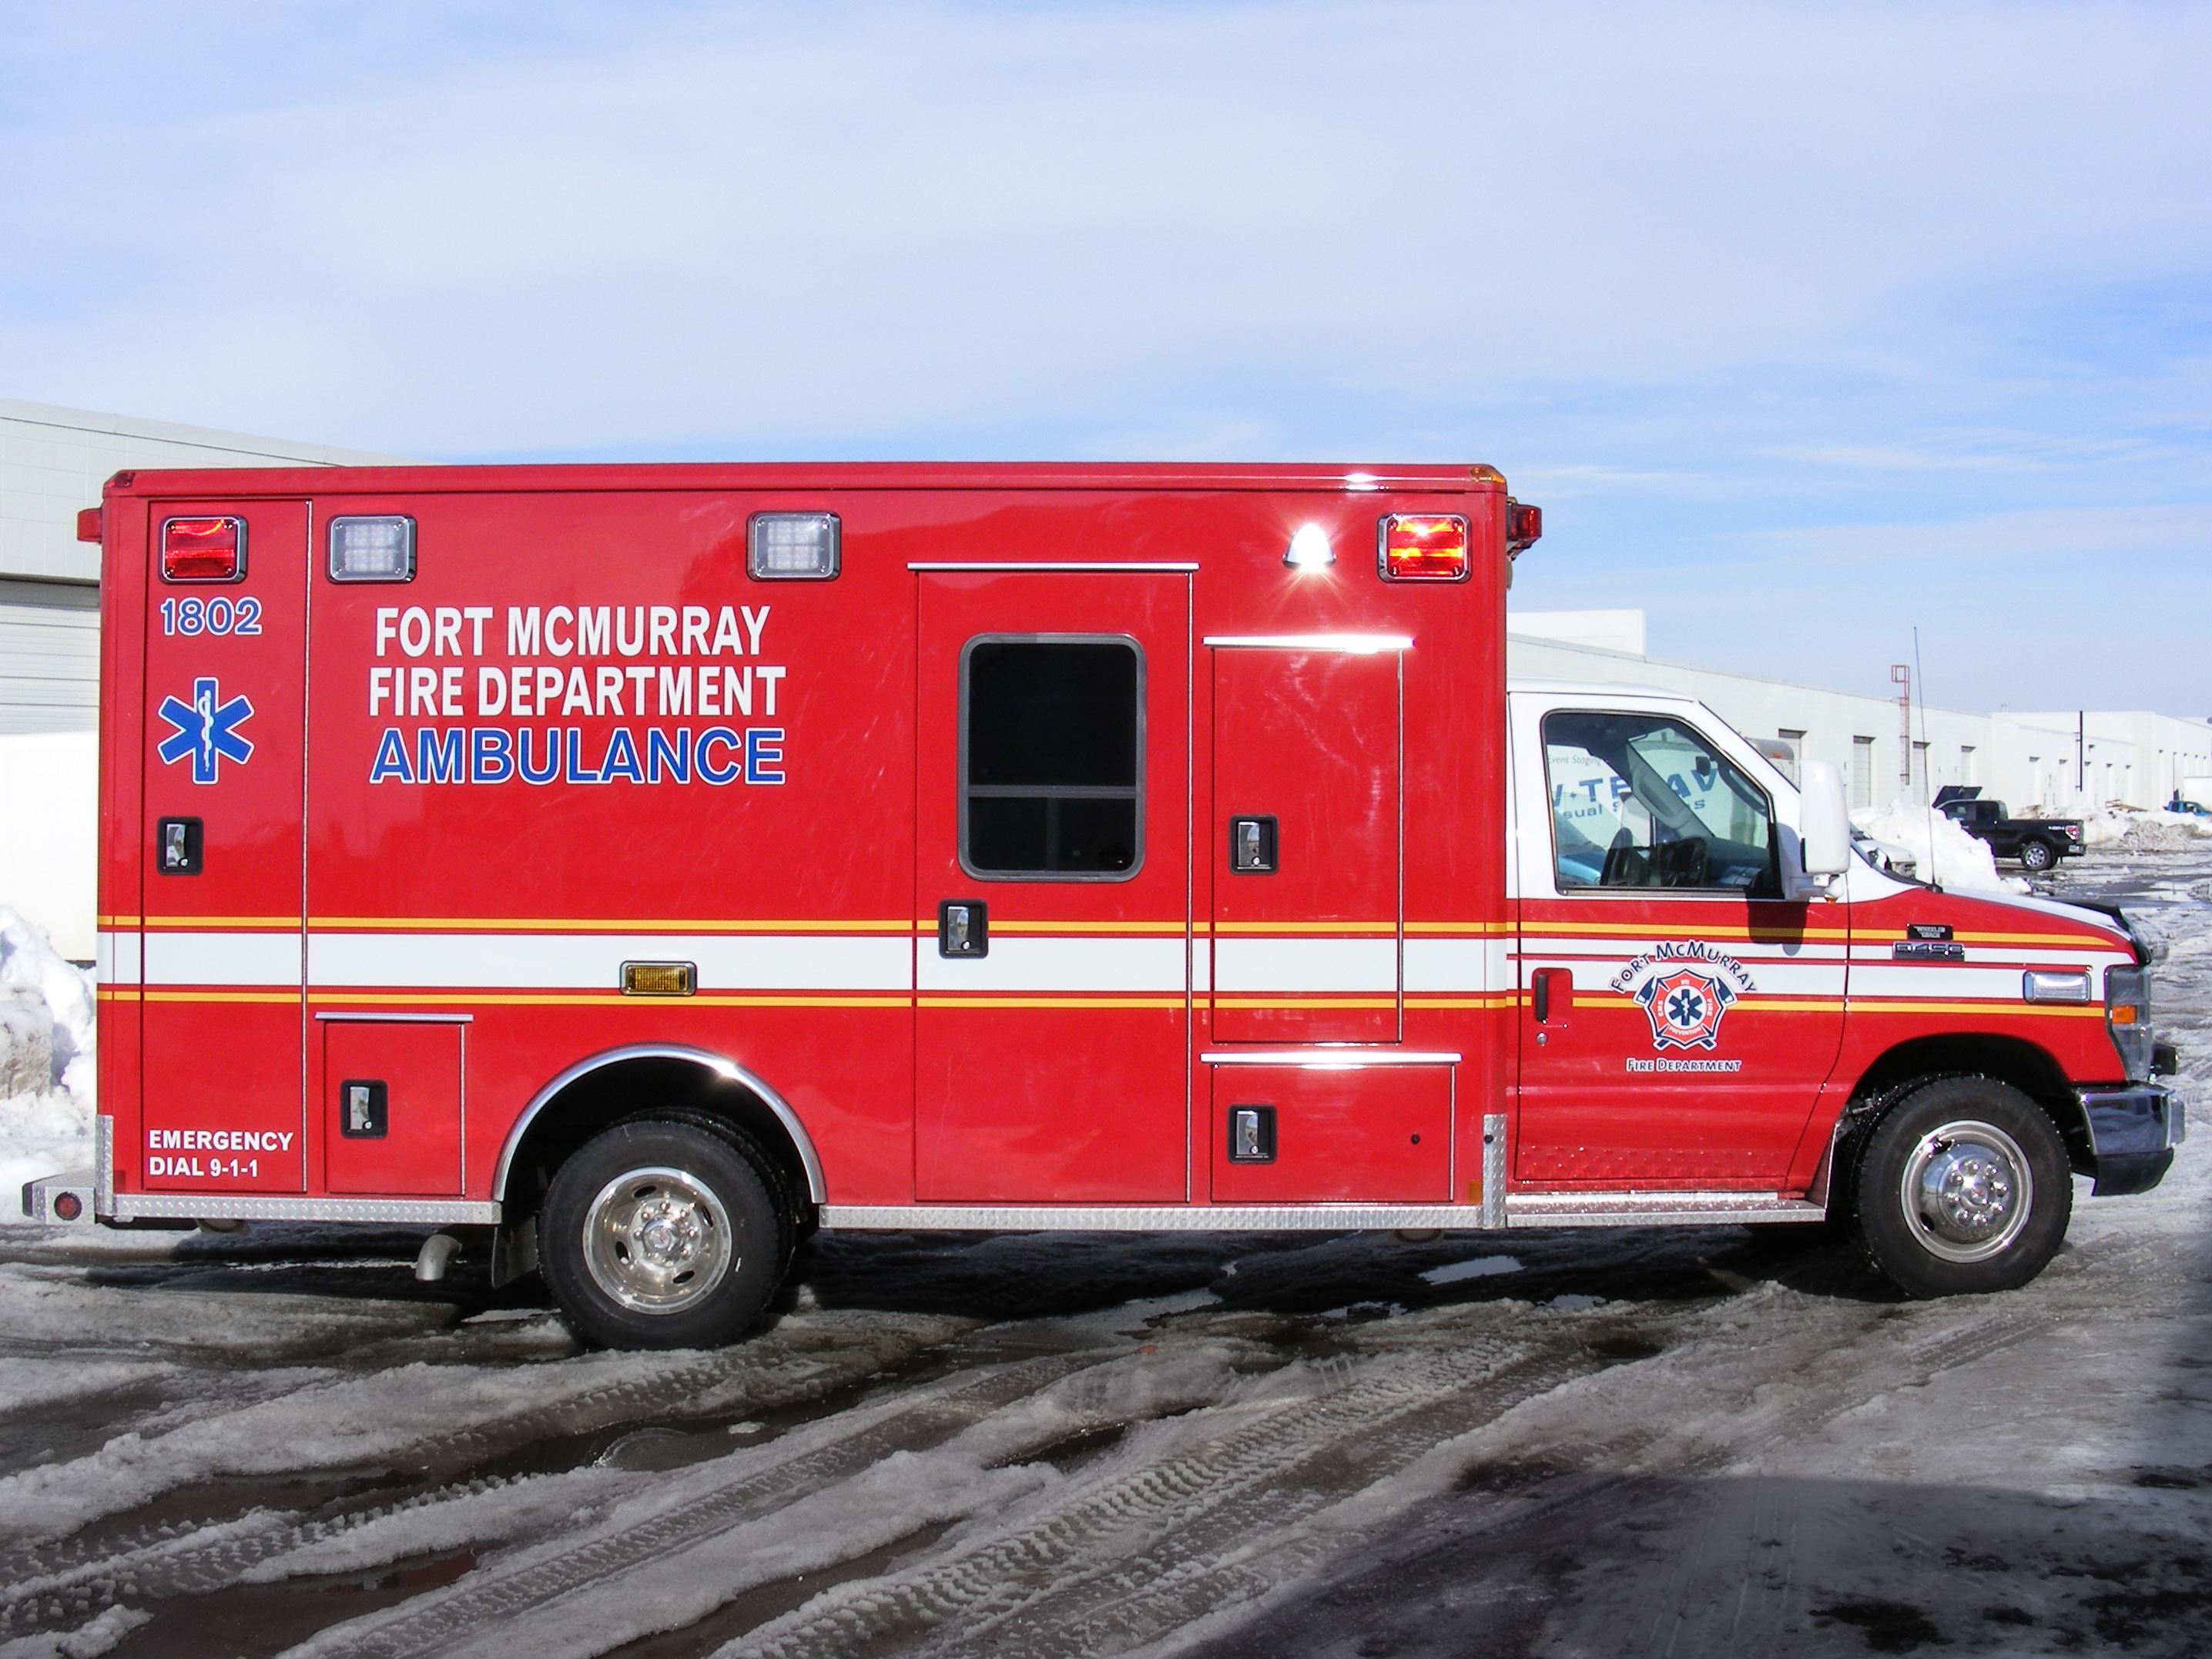 Fort McMurry fire department ambulance decals.